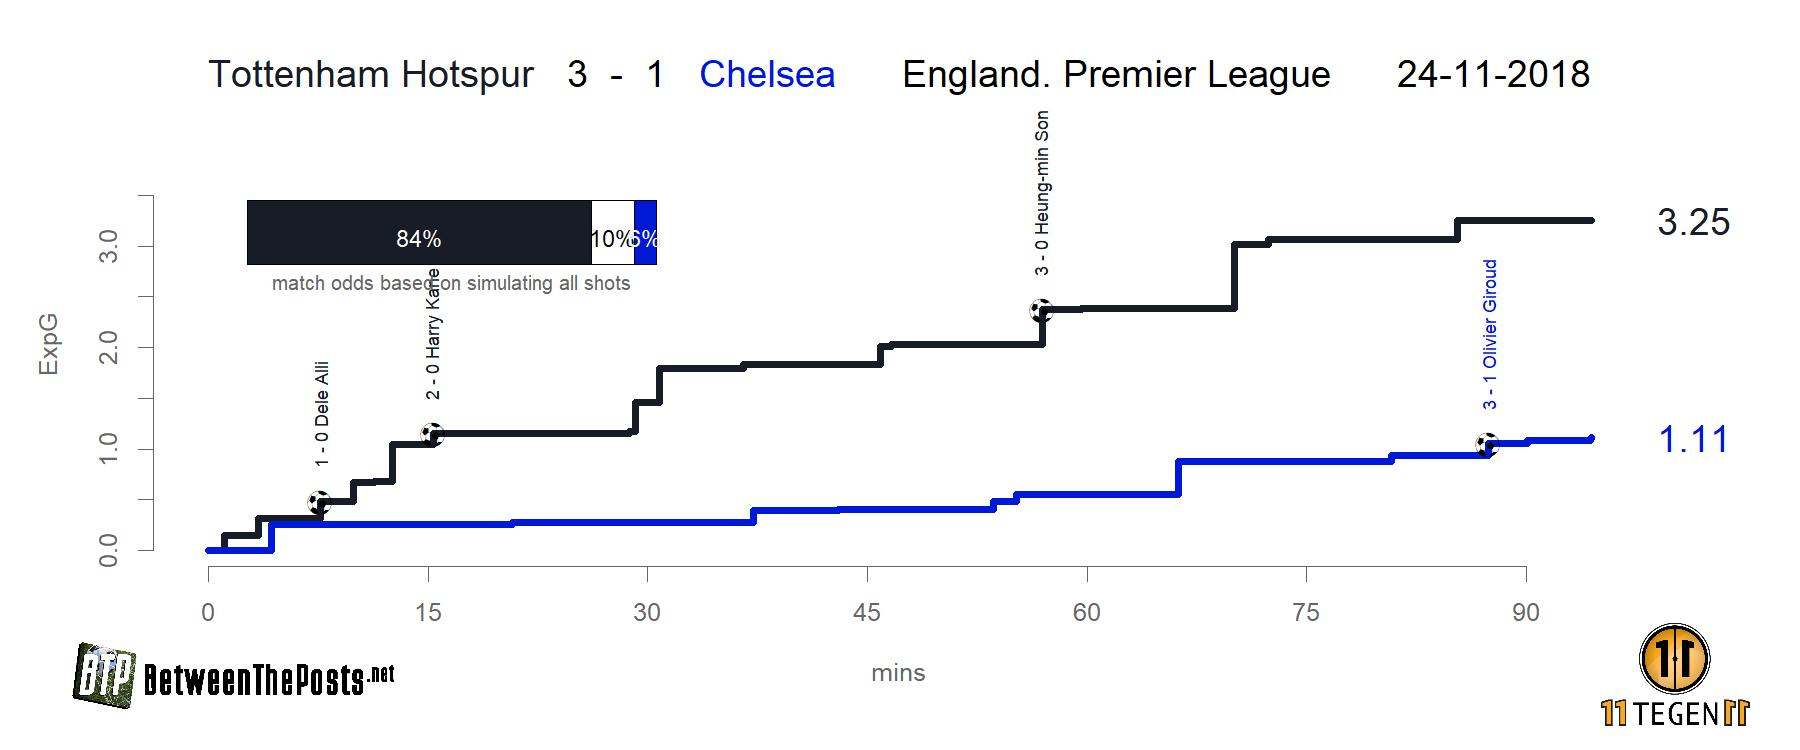 Expected goals plot Tottenham Hotspur - Chelsea 3-1